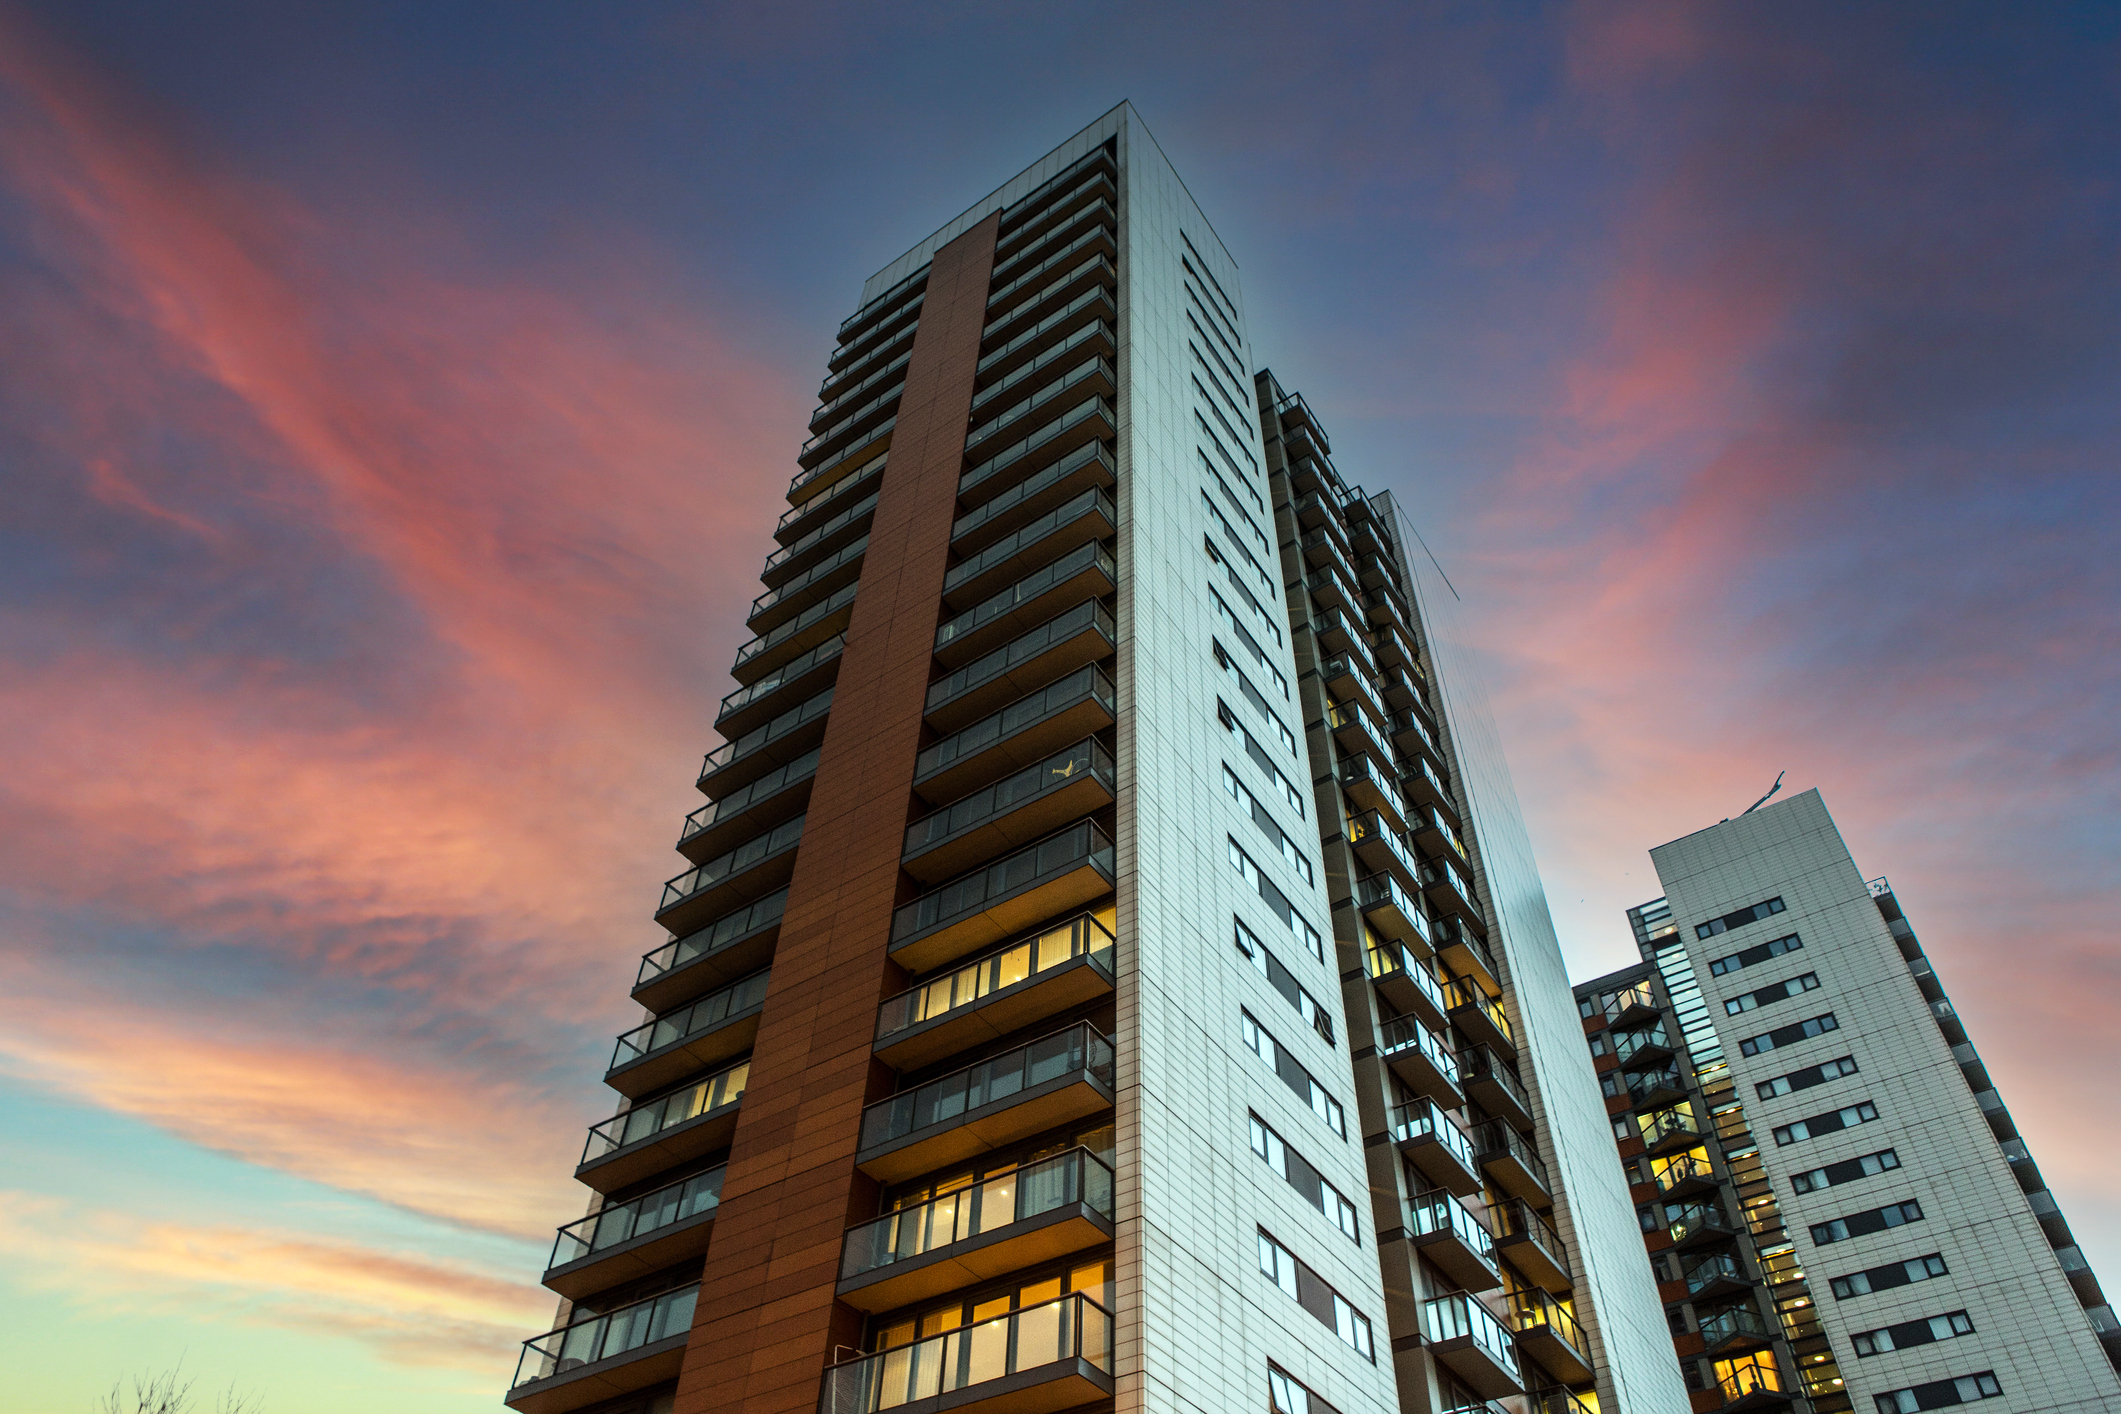 How to Check Your Property's Cladding for Fire Safety